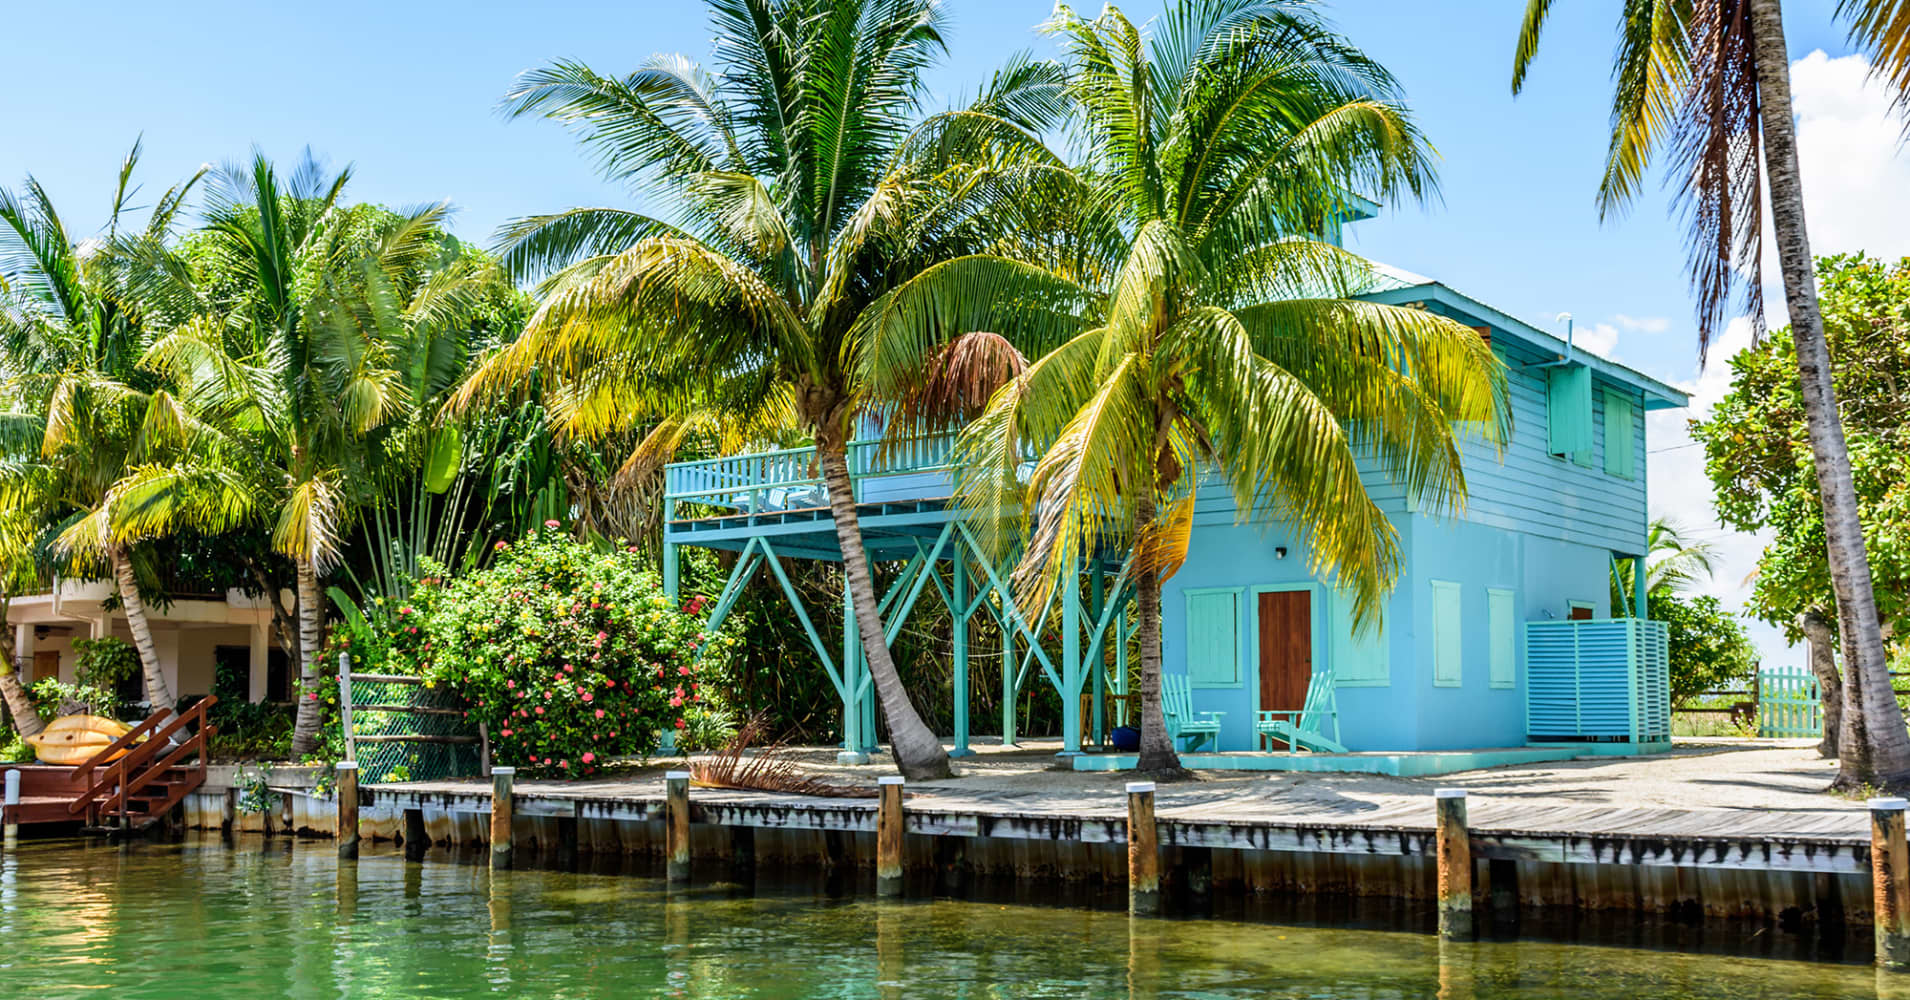 Tropical waterside house on lagoon side of Placencia in Belize, Central America.